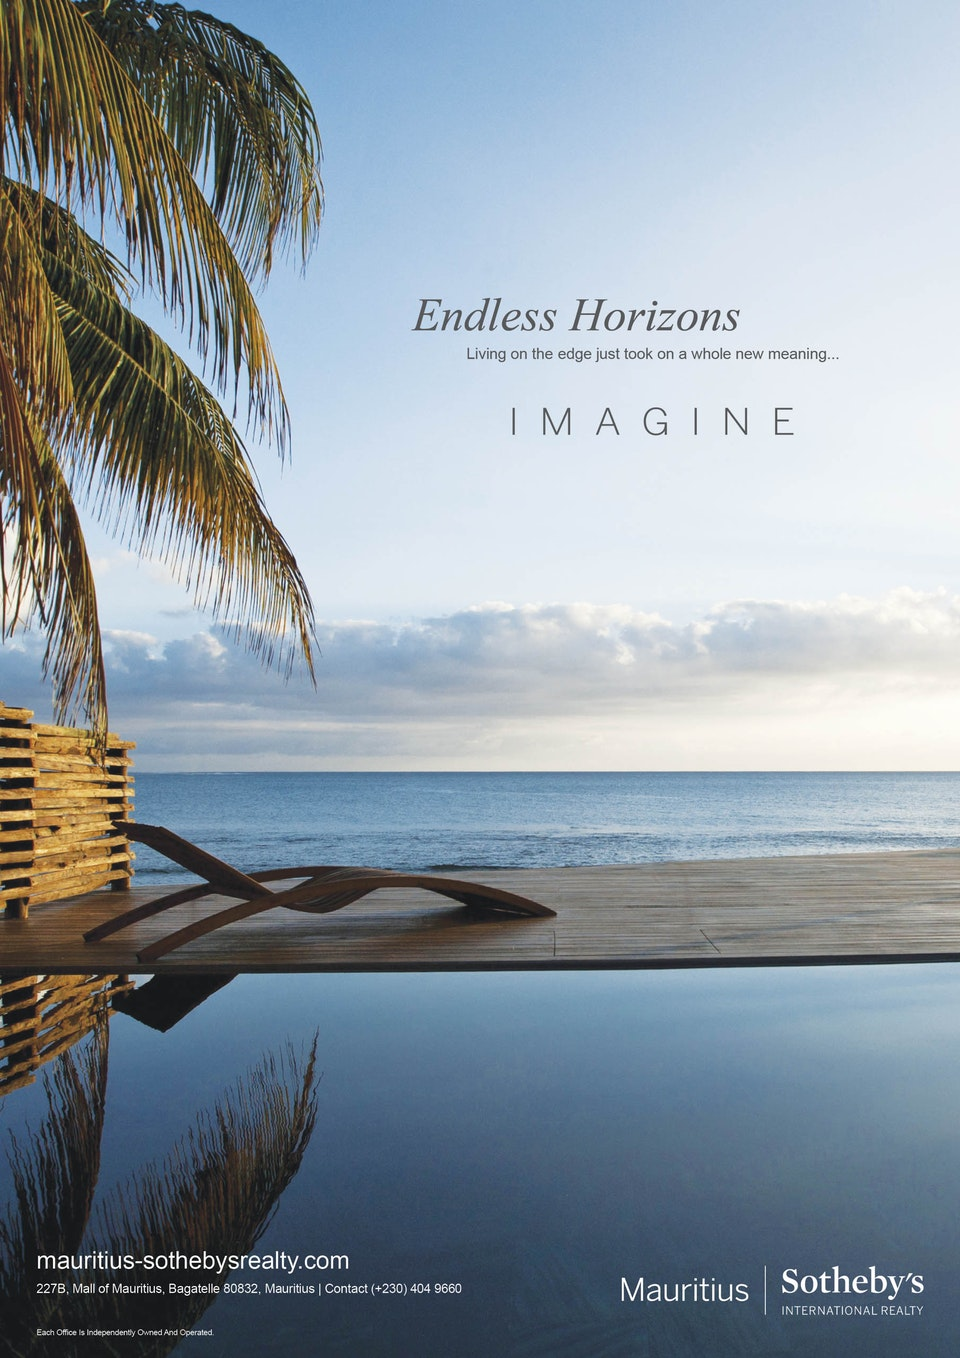 SIR_5608_SOTHEBY'S_CAMPAIGN_FACEBOOK ENDLESS HORIZONS_FA -